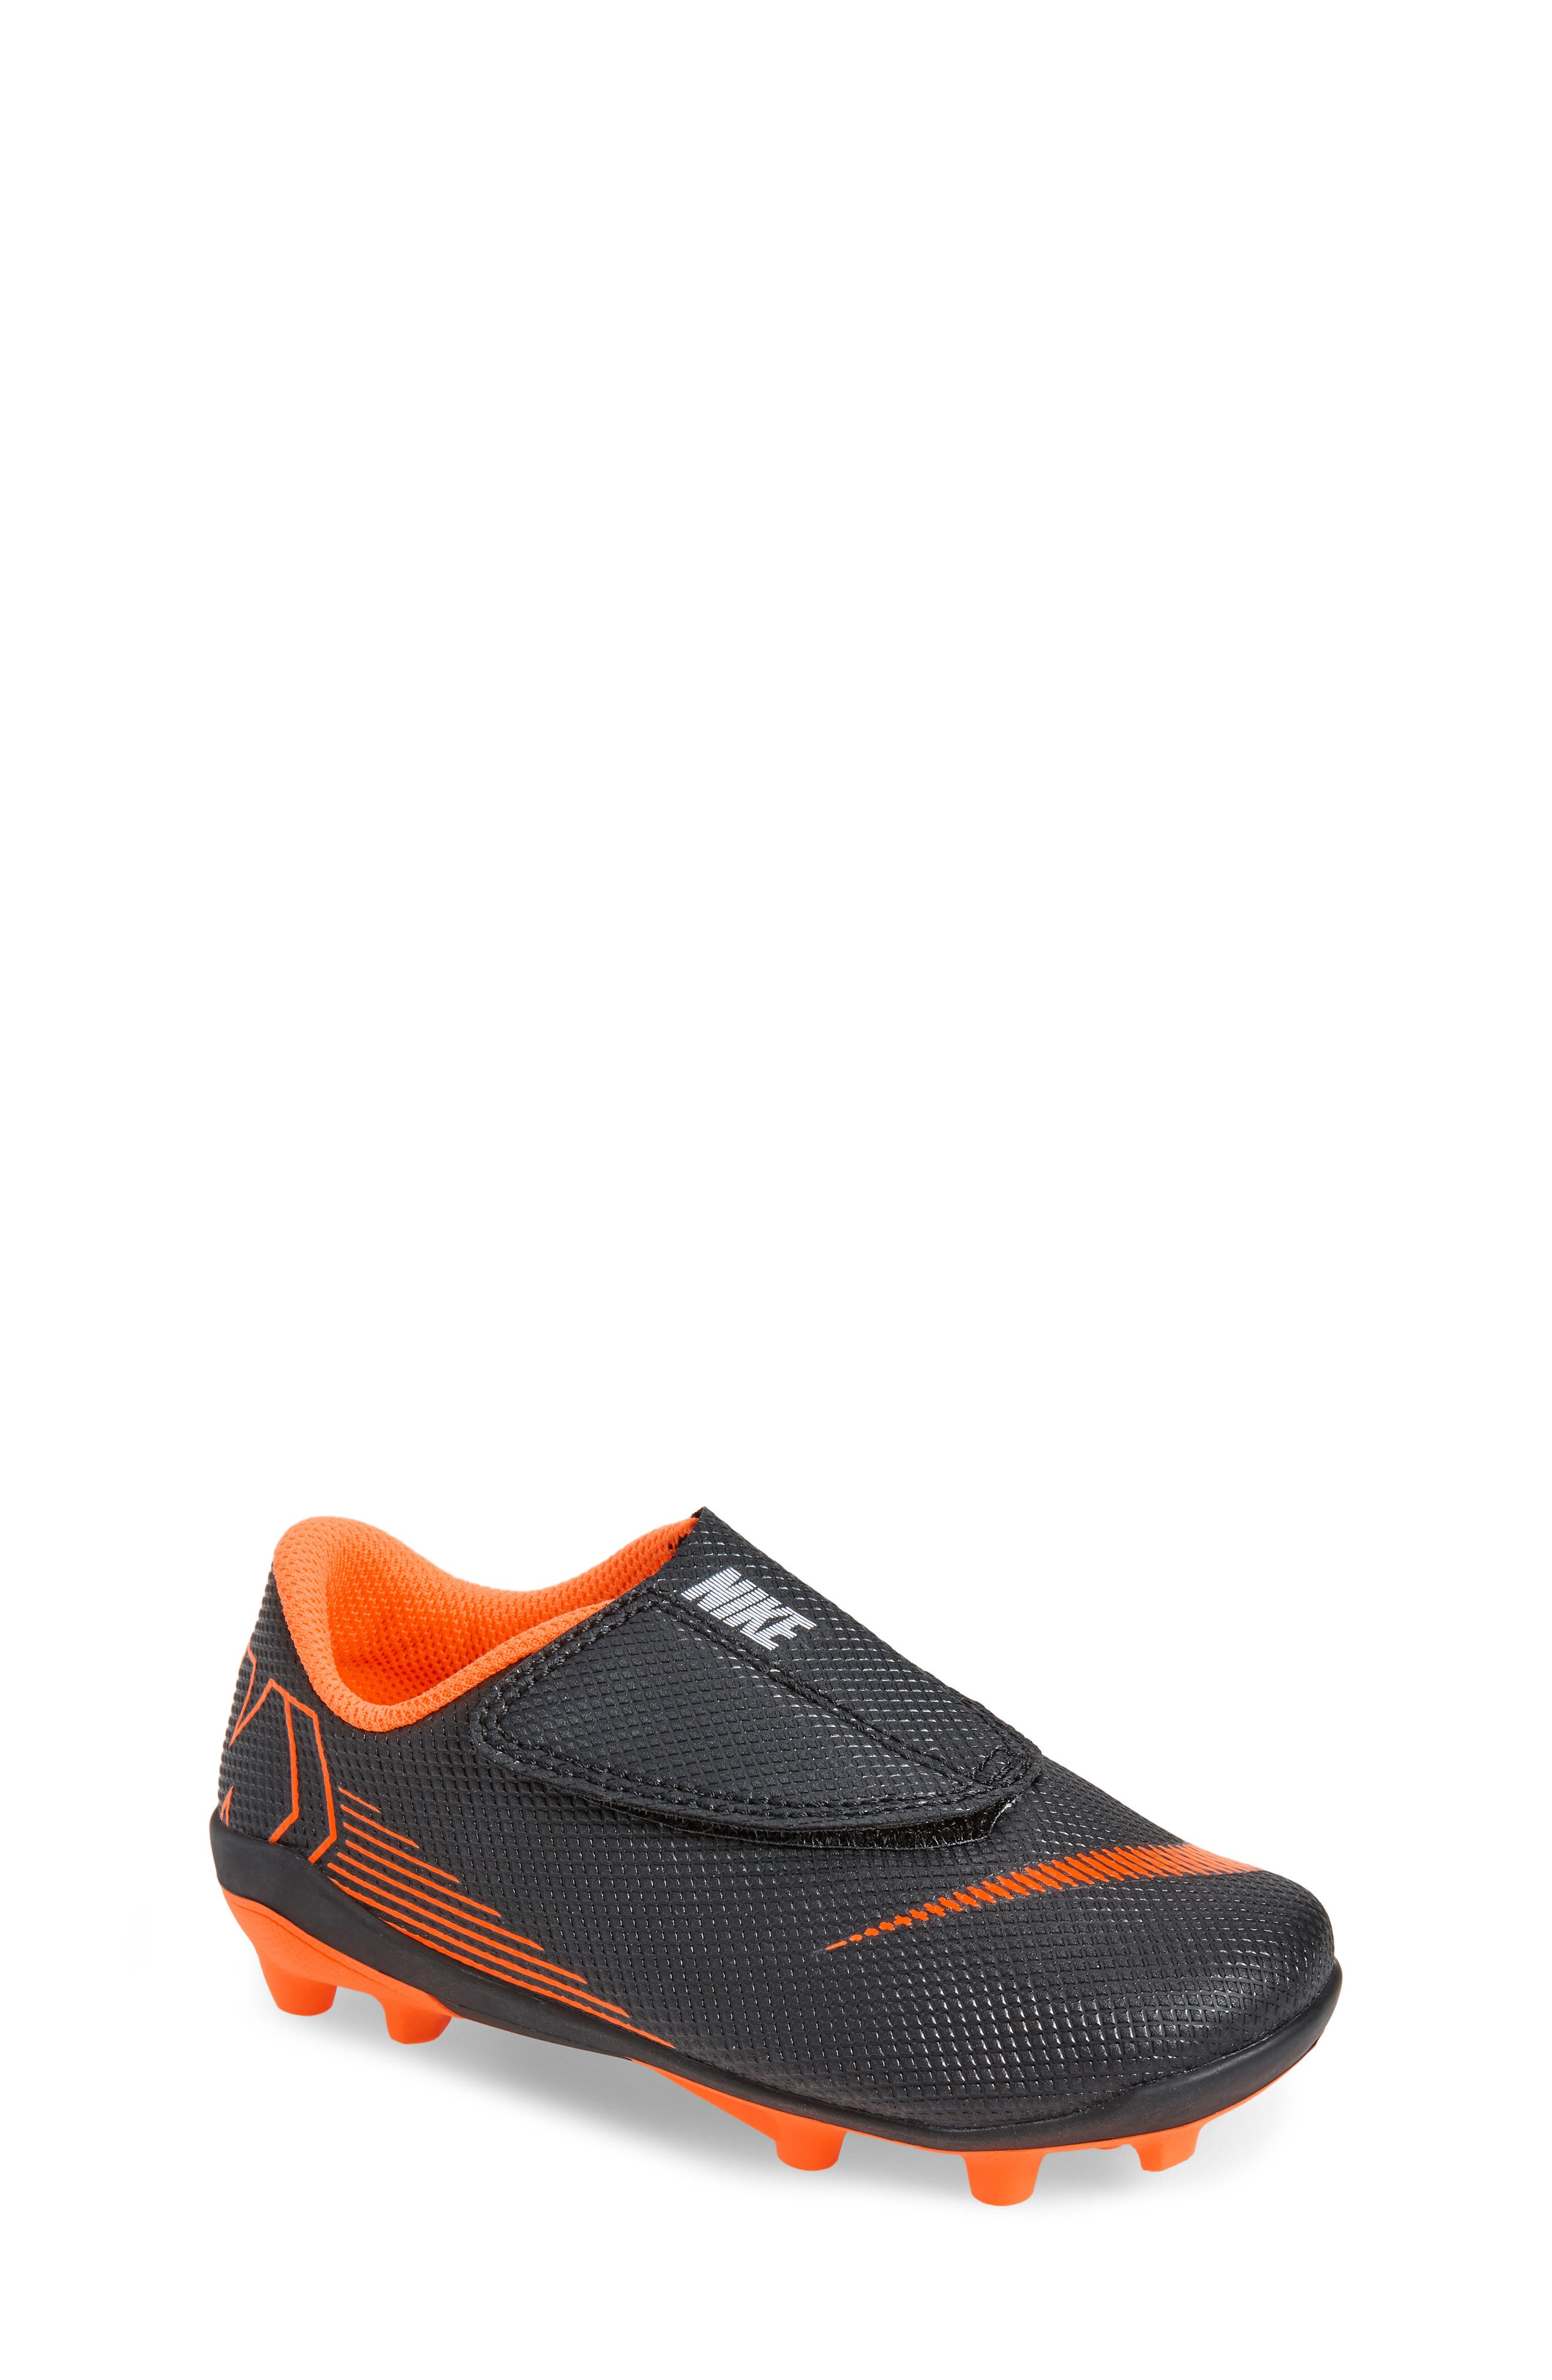 Tiempo Legend 7 Club Firm Ground Soccer Cleat,                         Main,                         color, Black/ Total Orange/ White